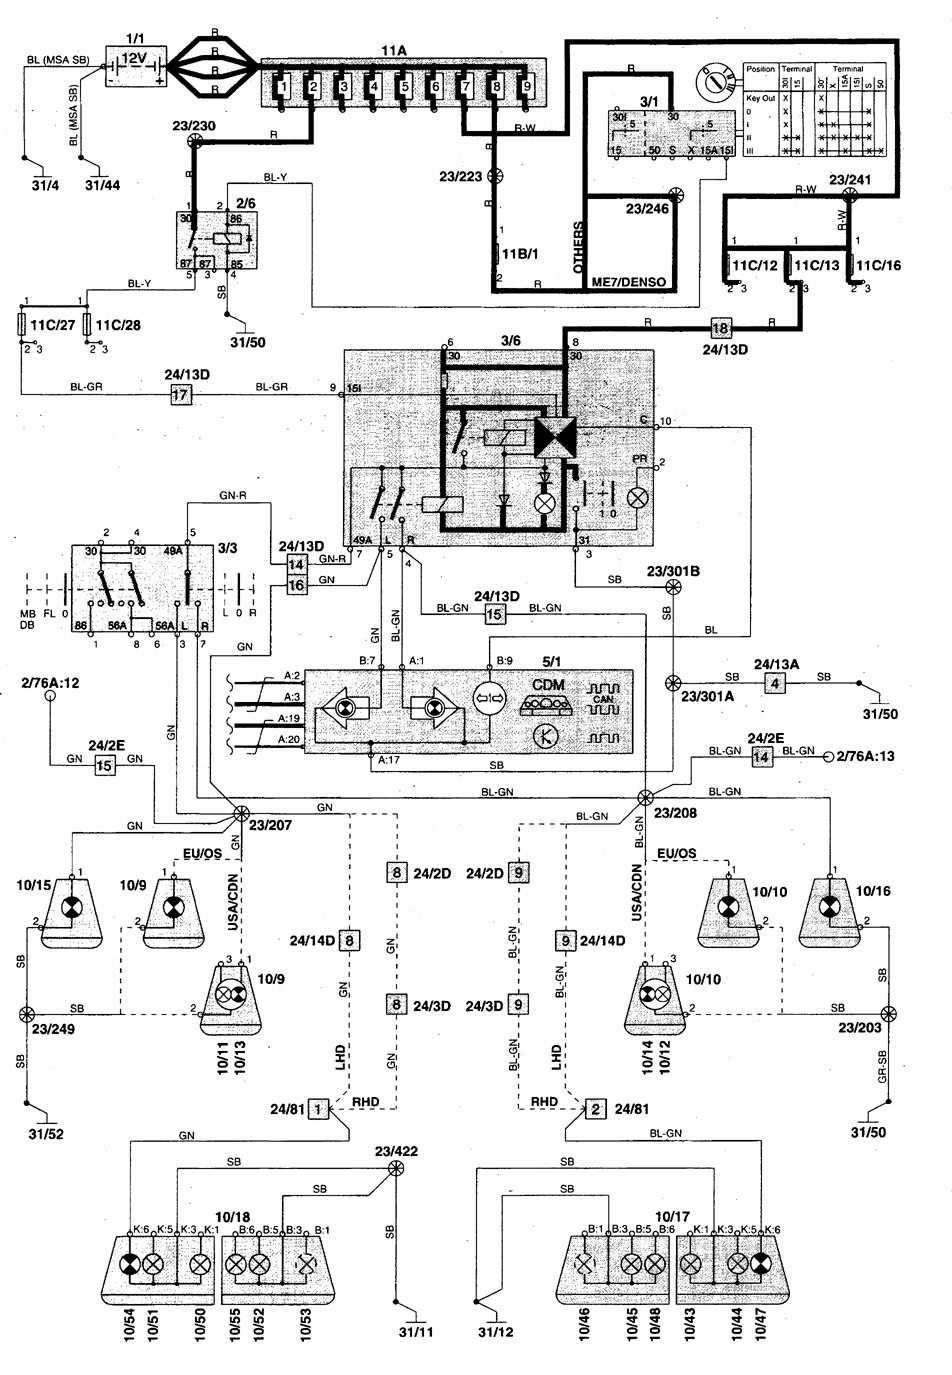 volvo s70 wiring diagram turn signal lamp 1999 volvo s70 (1998 2000) wiring diagrams turn signal lamp 2000 volvo s70 wiring diagram at bayanpartner.co